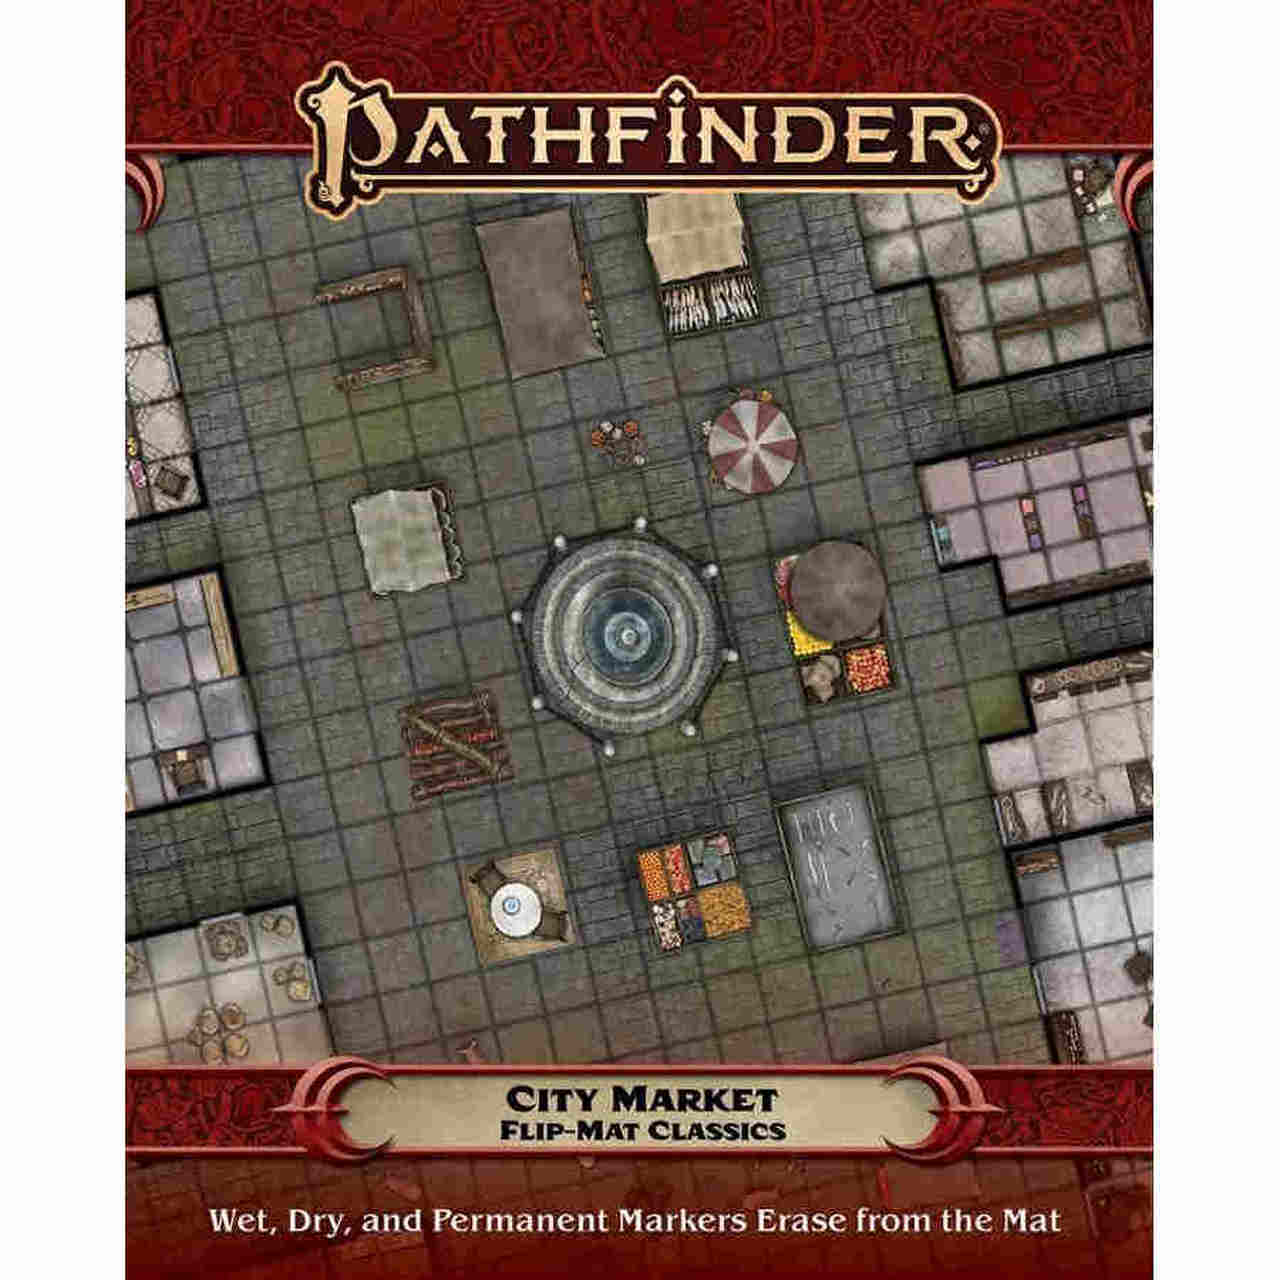 Pathfinder RPG: Flip-Mat Classics - City Market | All About Games